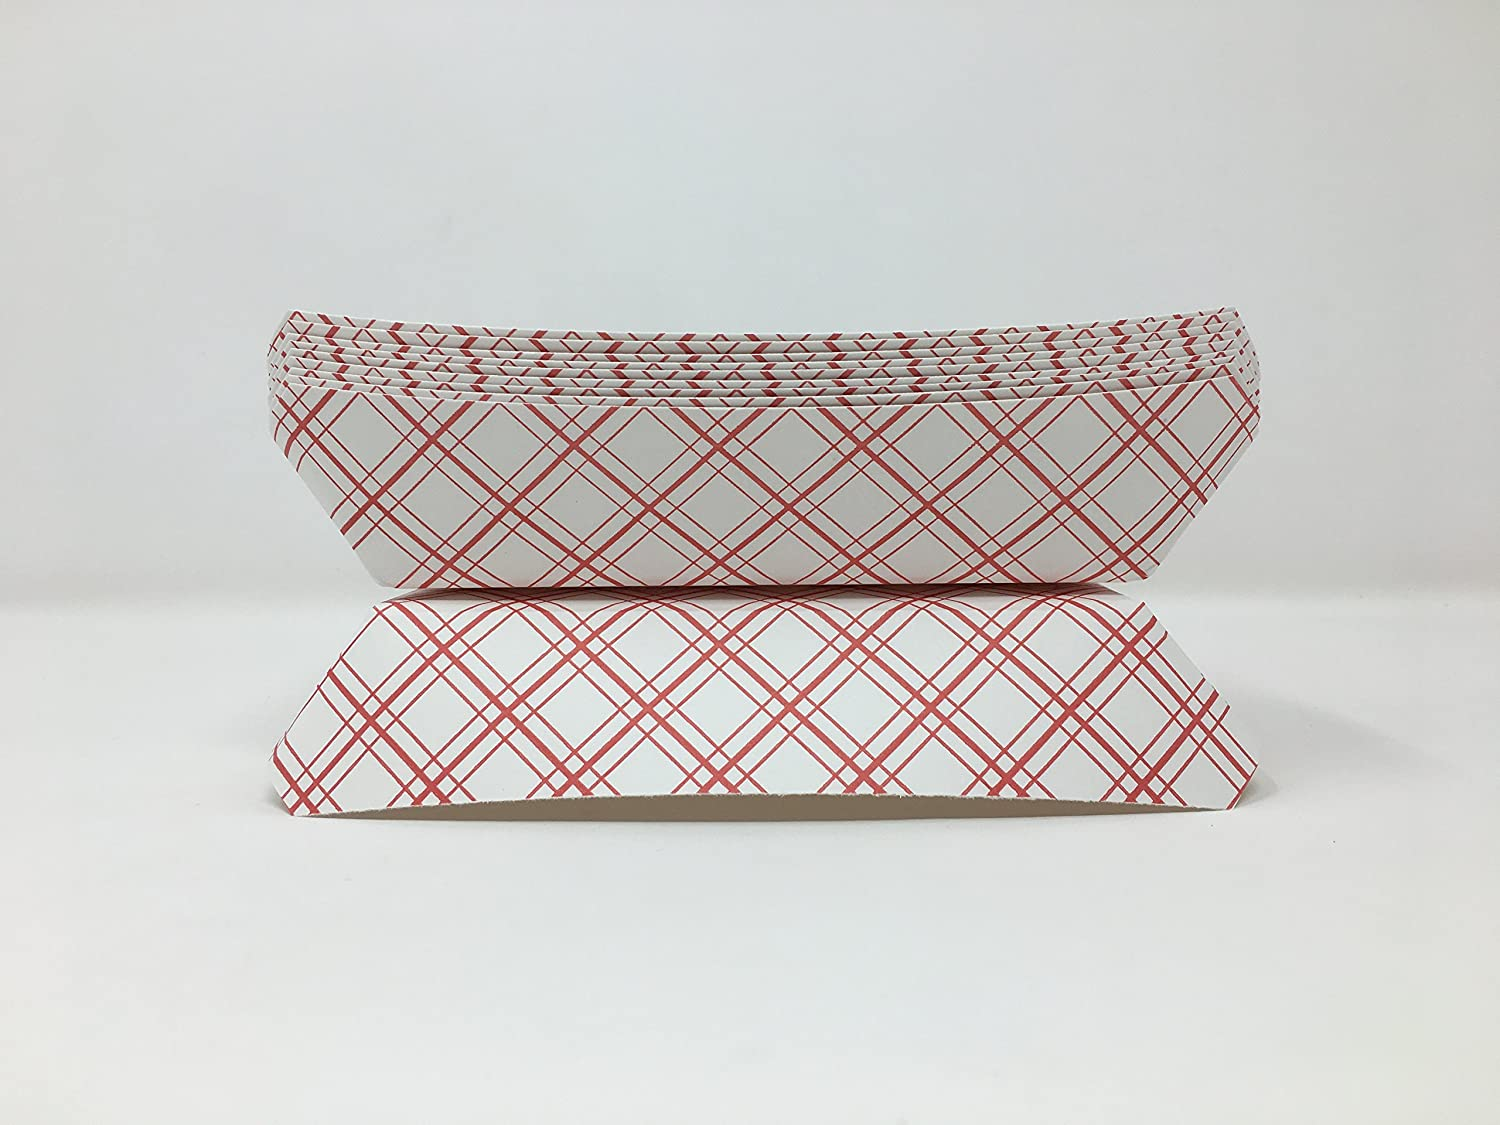 Mr. Miracle 7 Inch Paper Hot Dog Tray in Red White Pattern. Pack of 100. Disposable, Recyclable and Fully Biodegradable. Made in USA